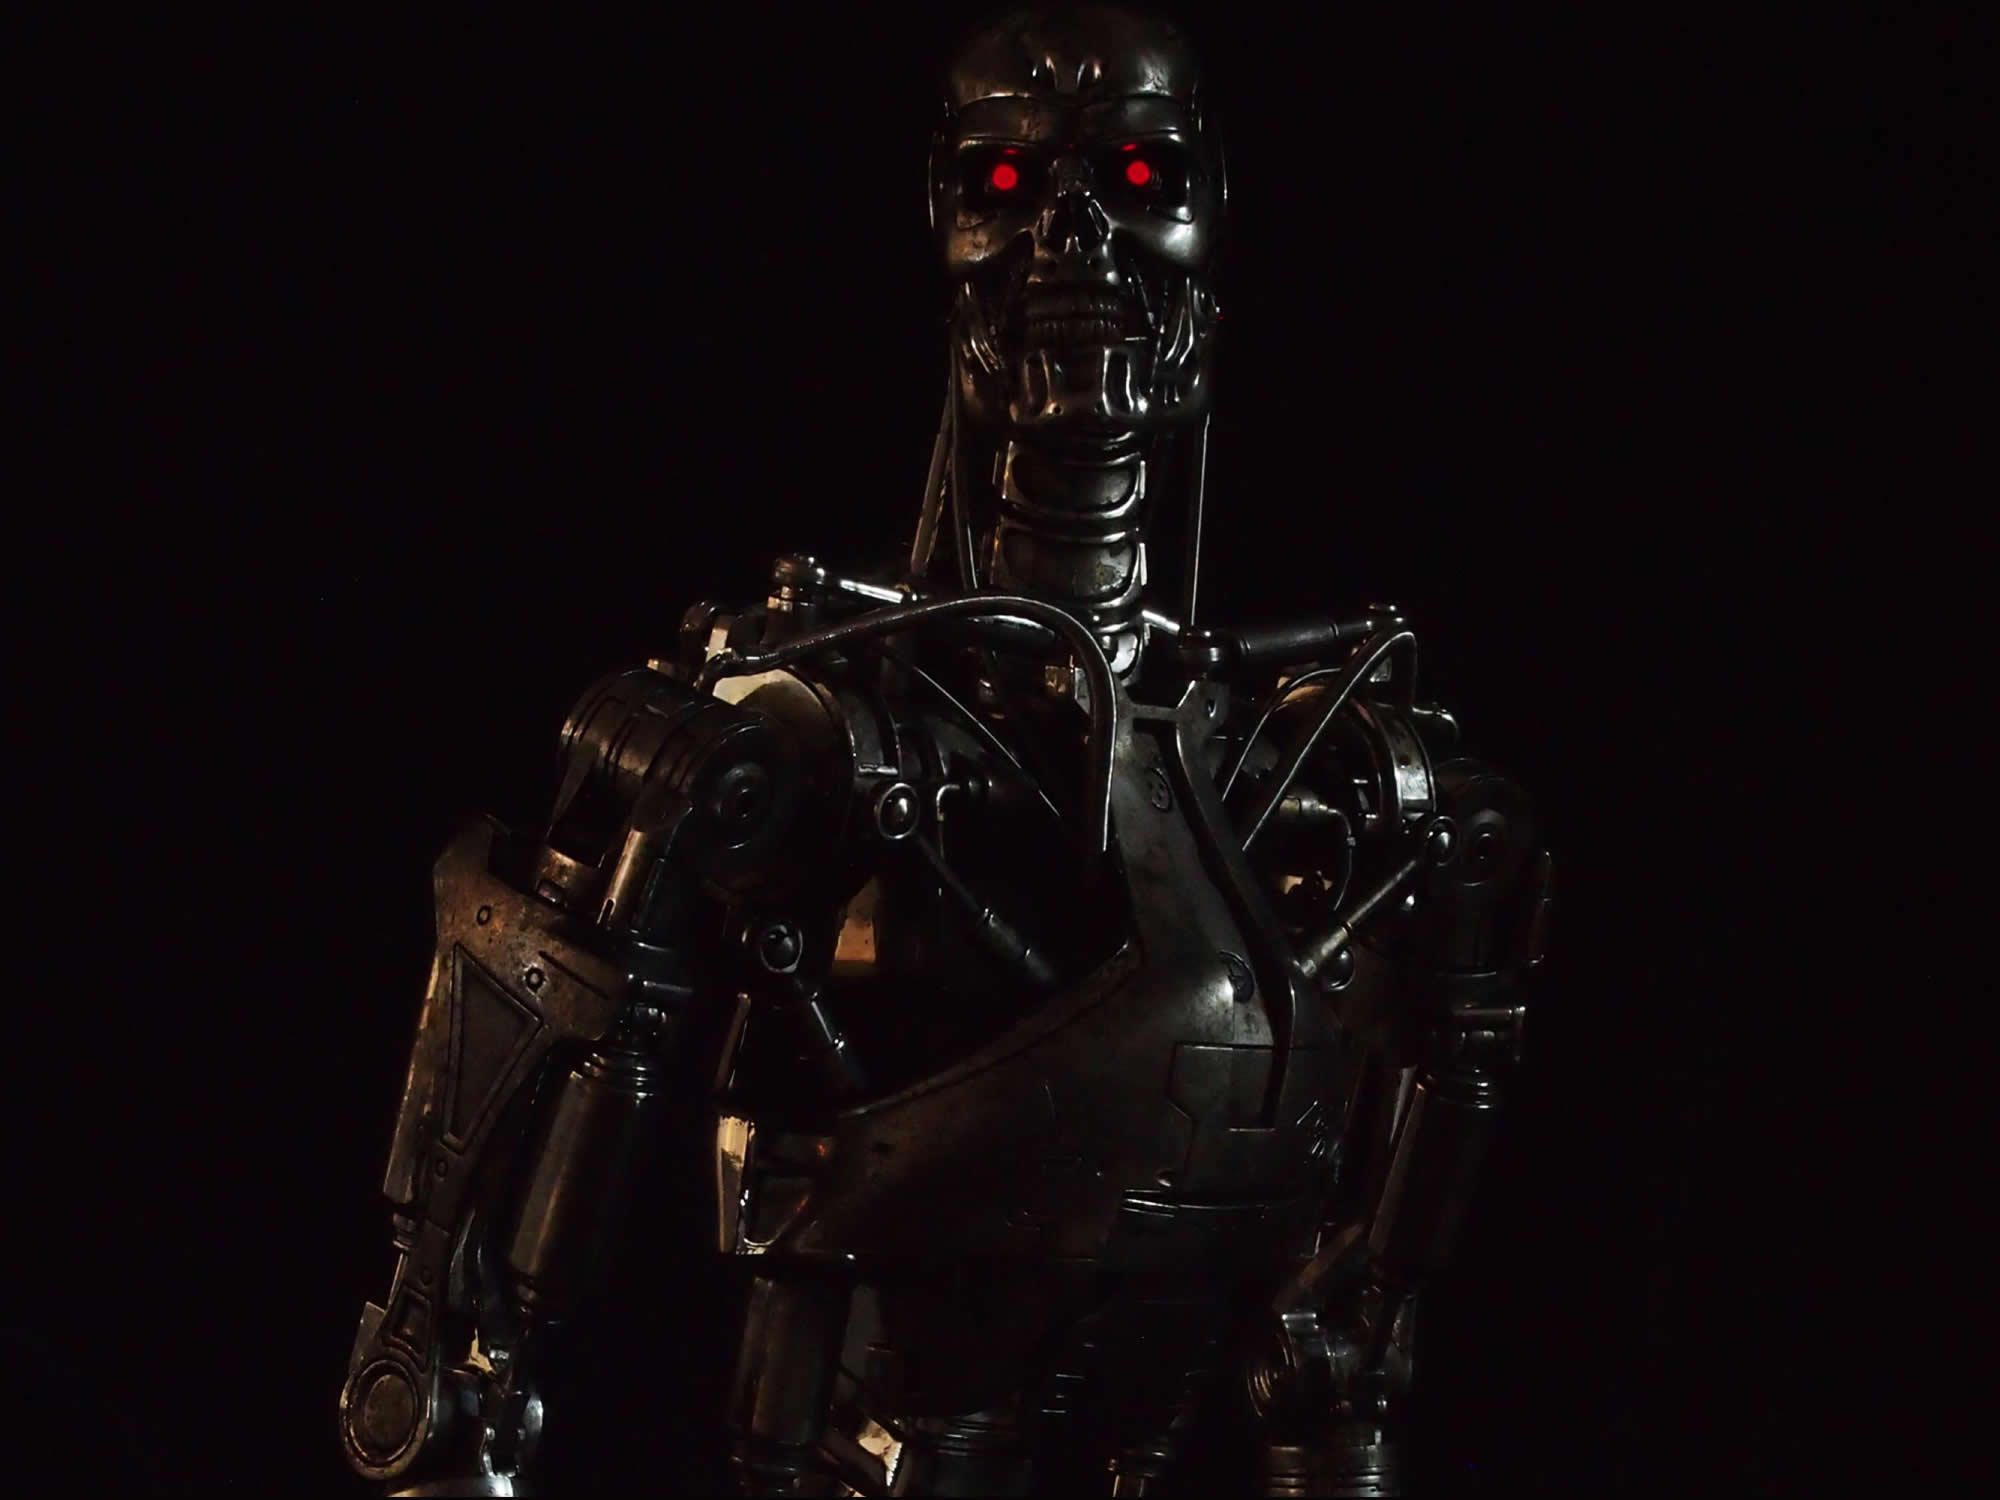 HOTTOYS Quarter Scale - 1/4 Scale Fully Poseable Figure: The Terminator - T-800 Endoskeleton